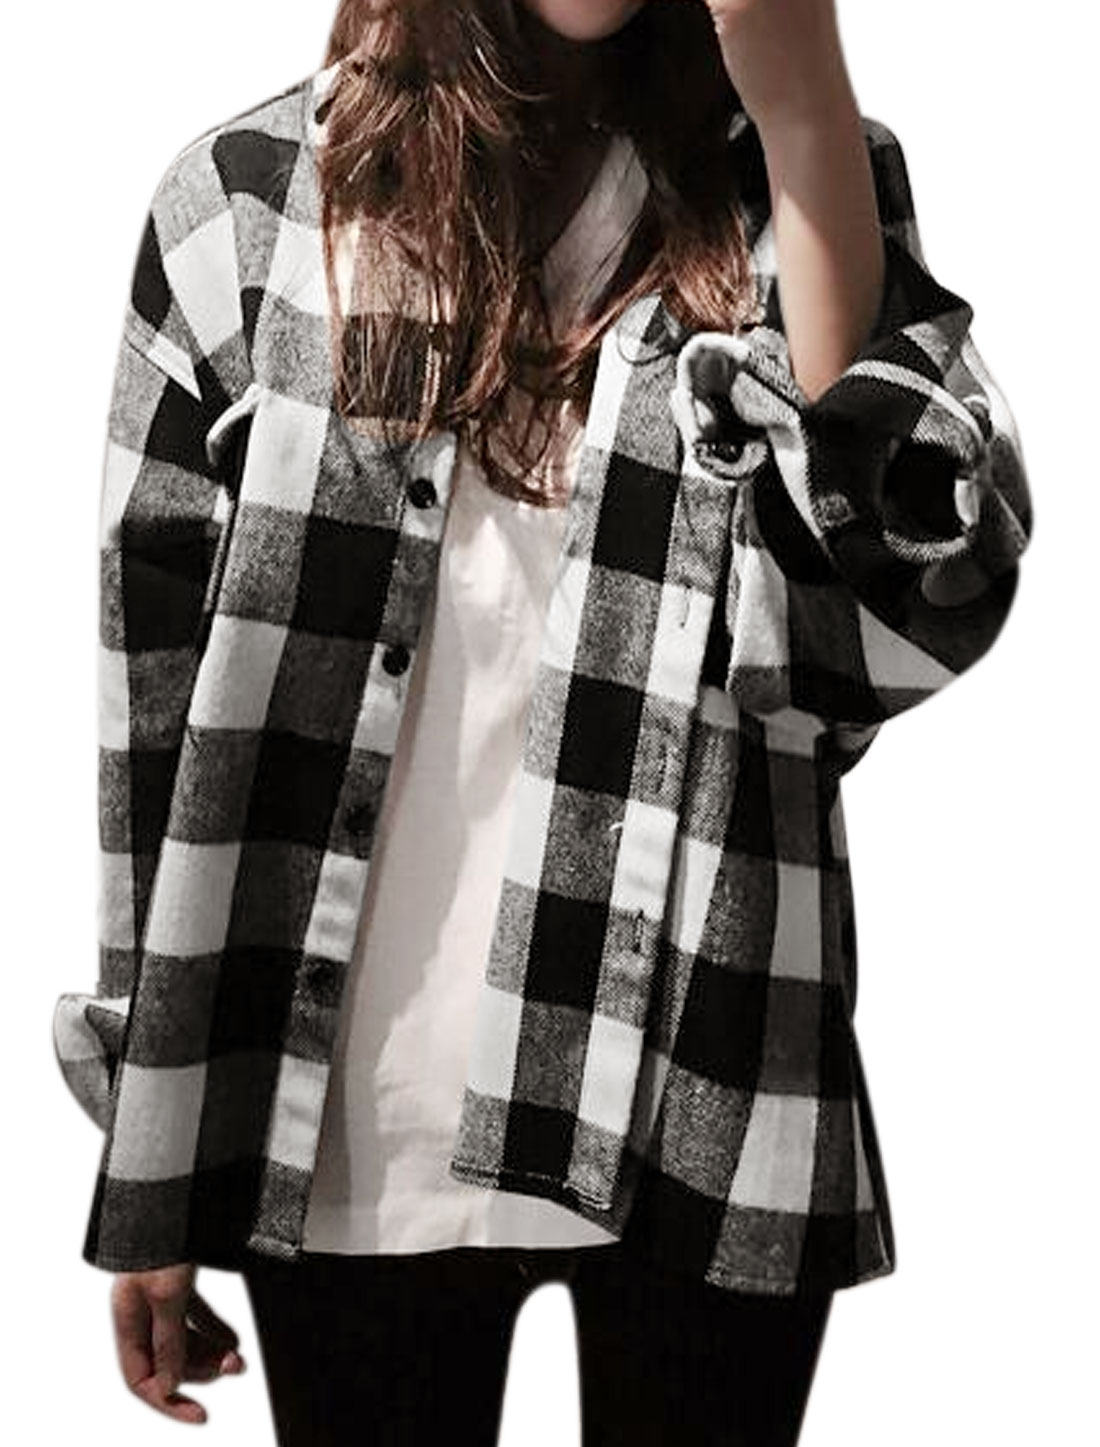 Women Point Collar Batwing Sleeves Plaids Shirt Jacket Black White XS